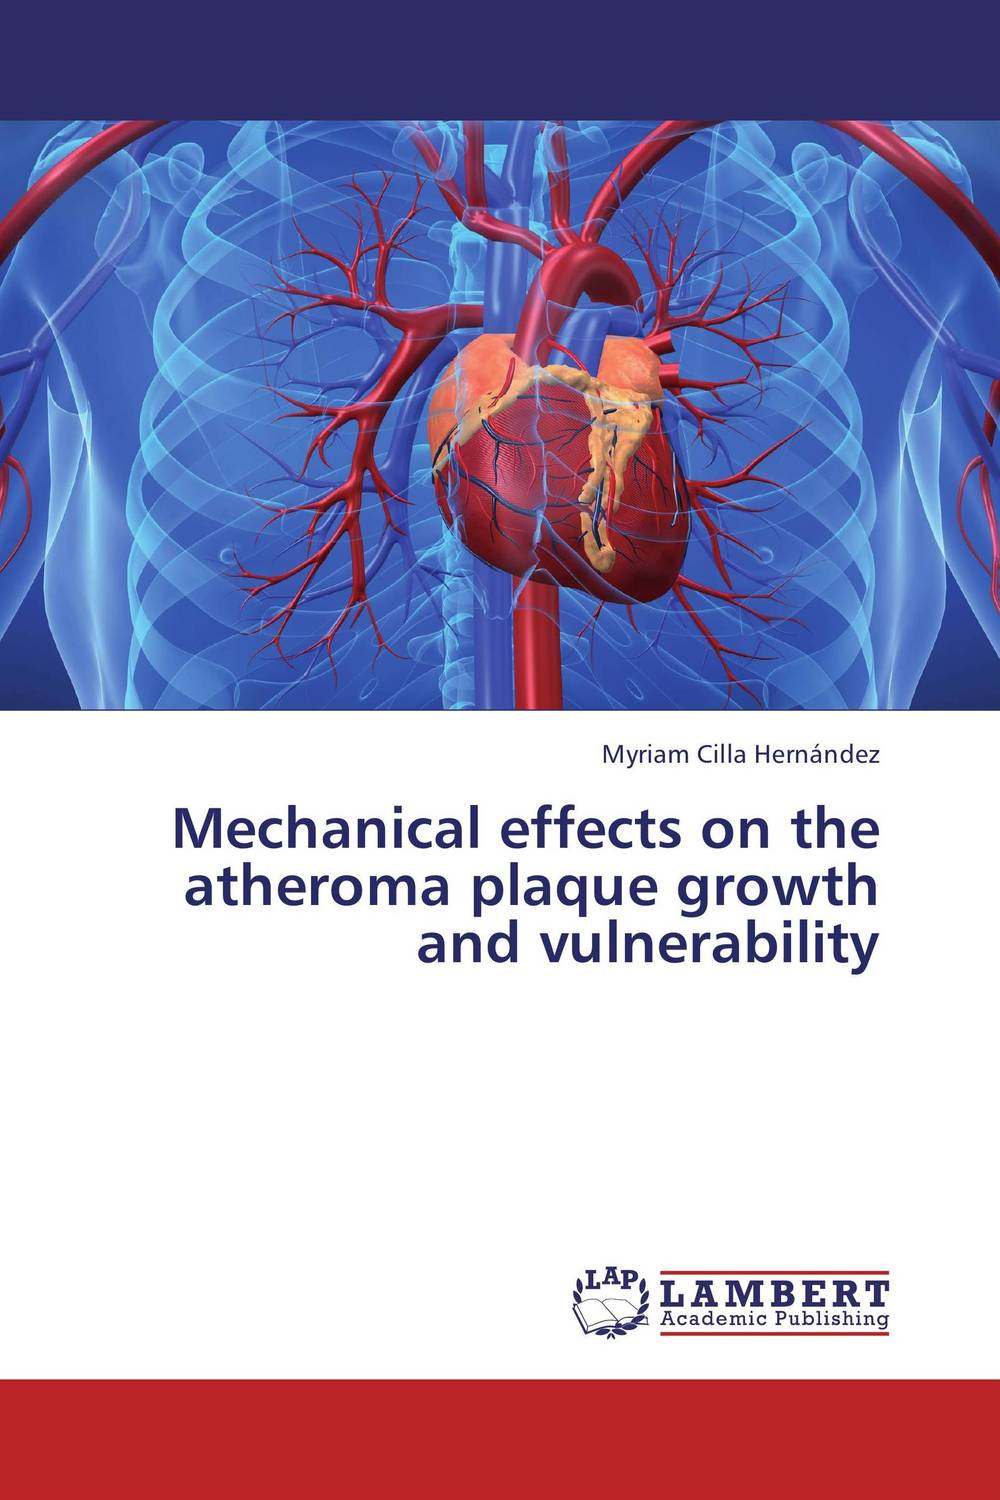 Mechanical effects on the atheroma plaque growth and vulnerability